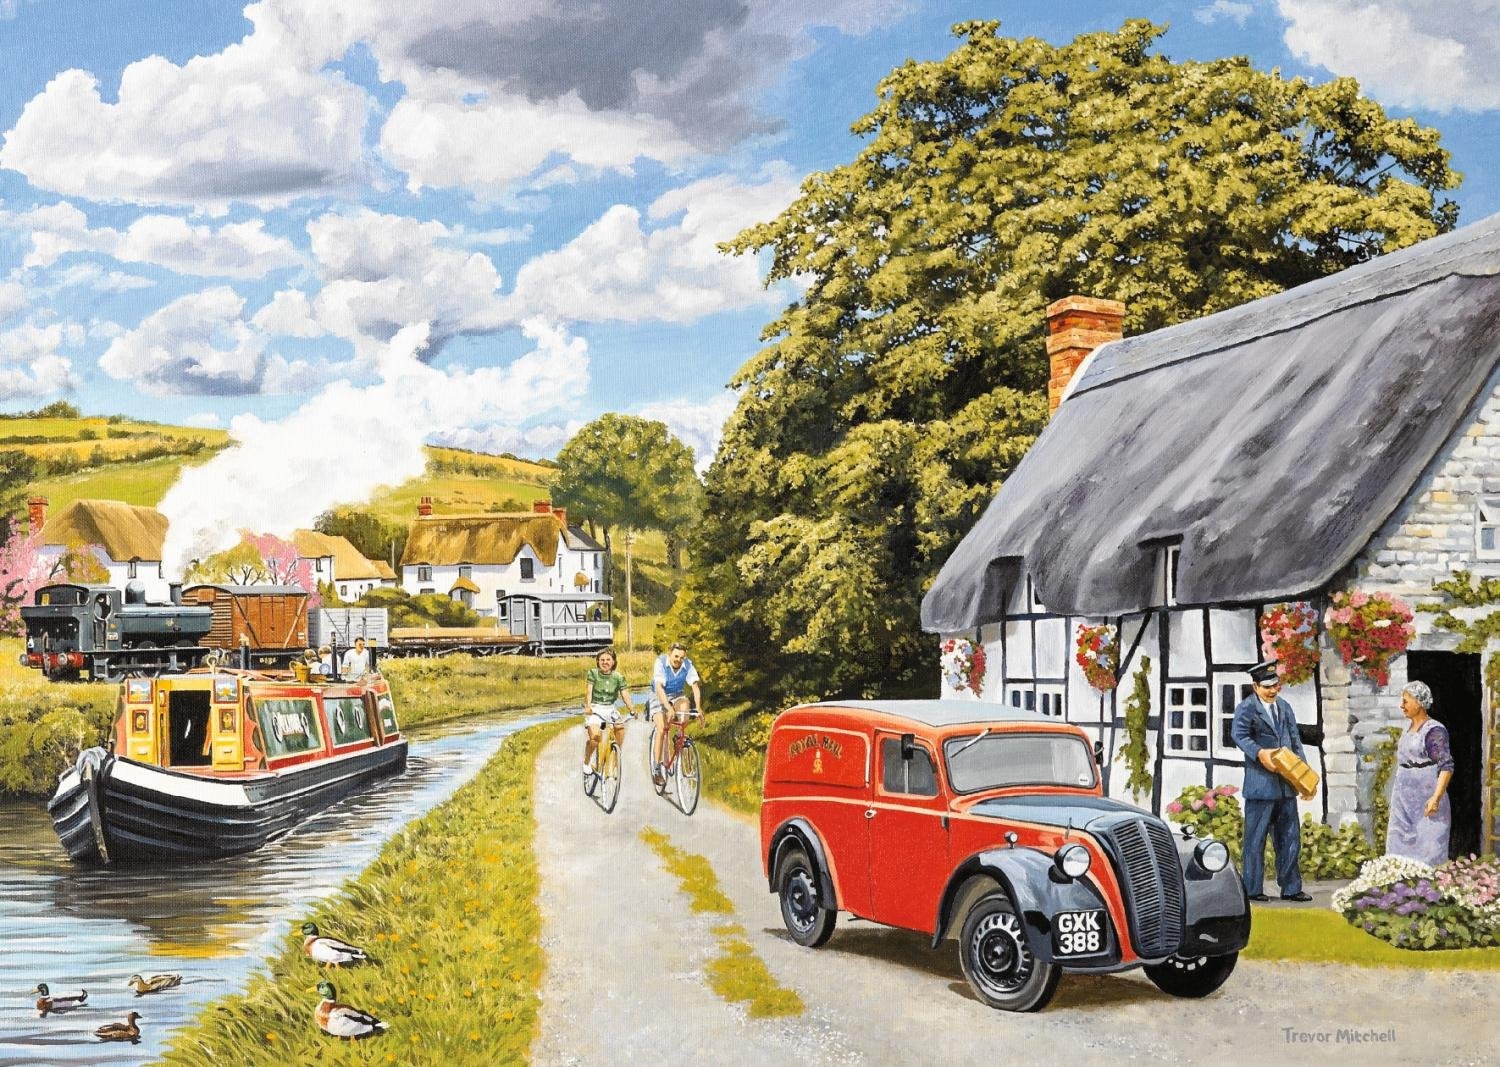 falcon-xxl-teile-parcel-for-canal-cottage-200-teile-puzzle-jumbo-11214